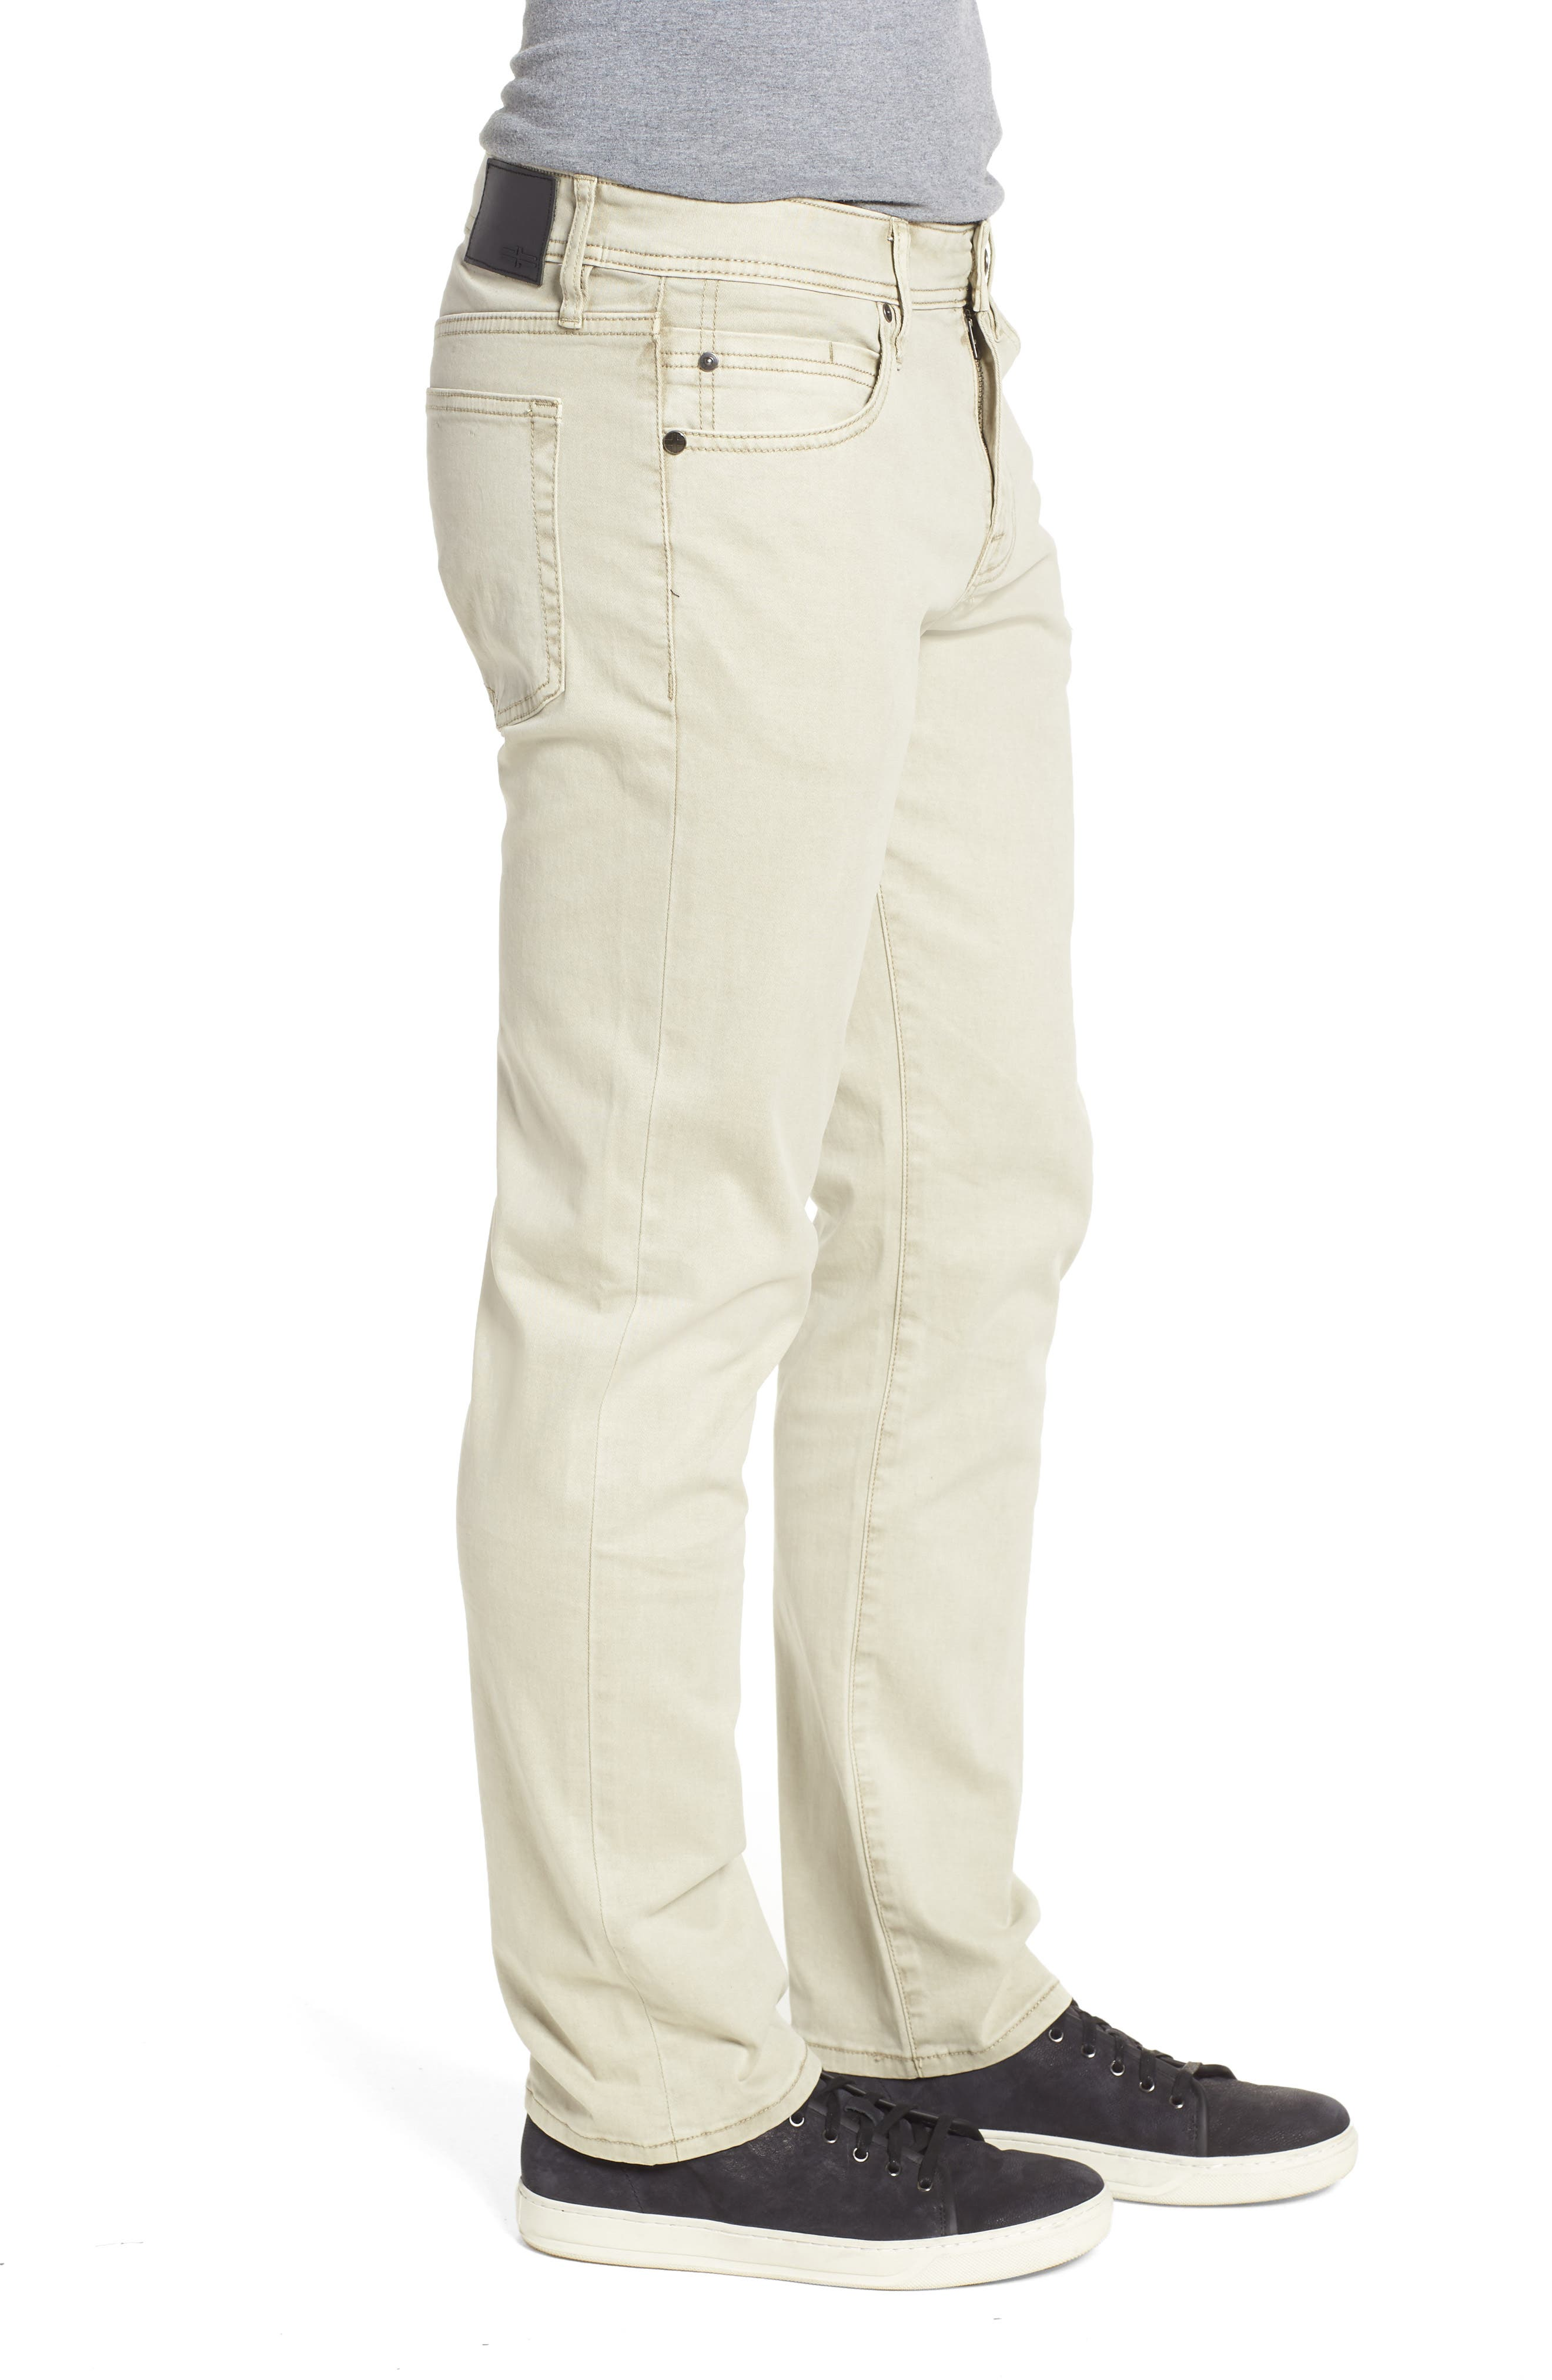 Jeans Co. Straight Leg Jeans,                             Alternate thumbnail 3, color,                             Sandstrom